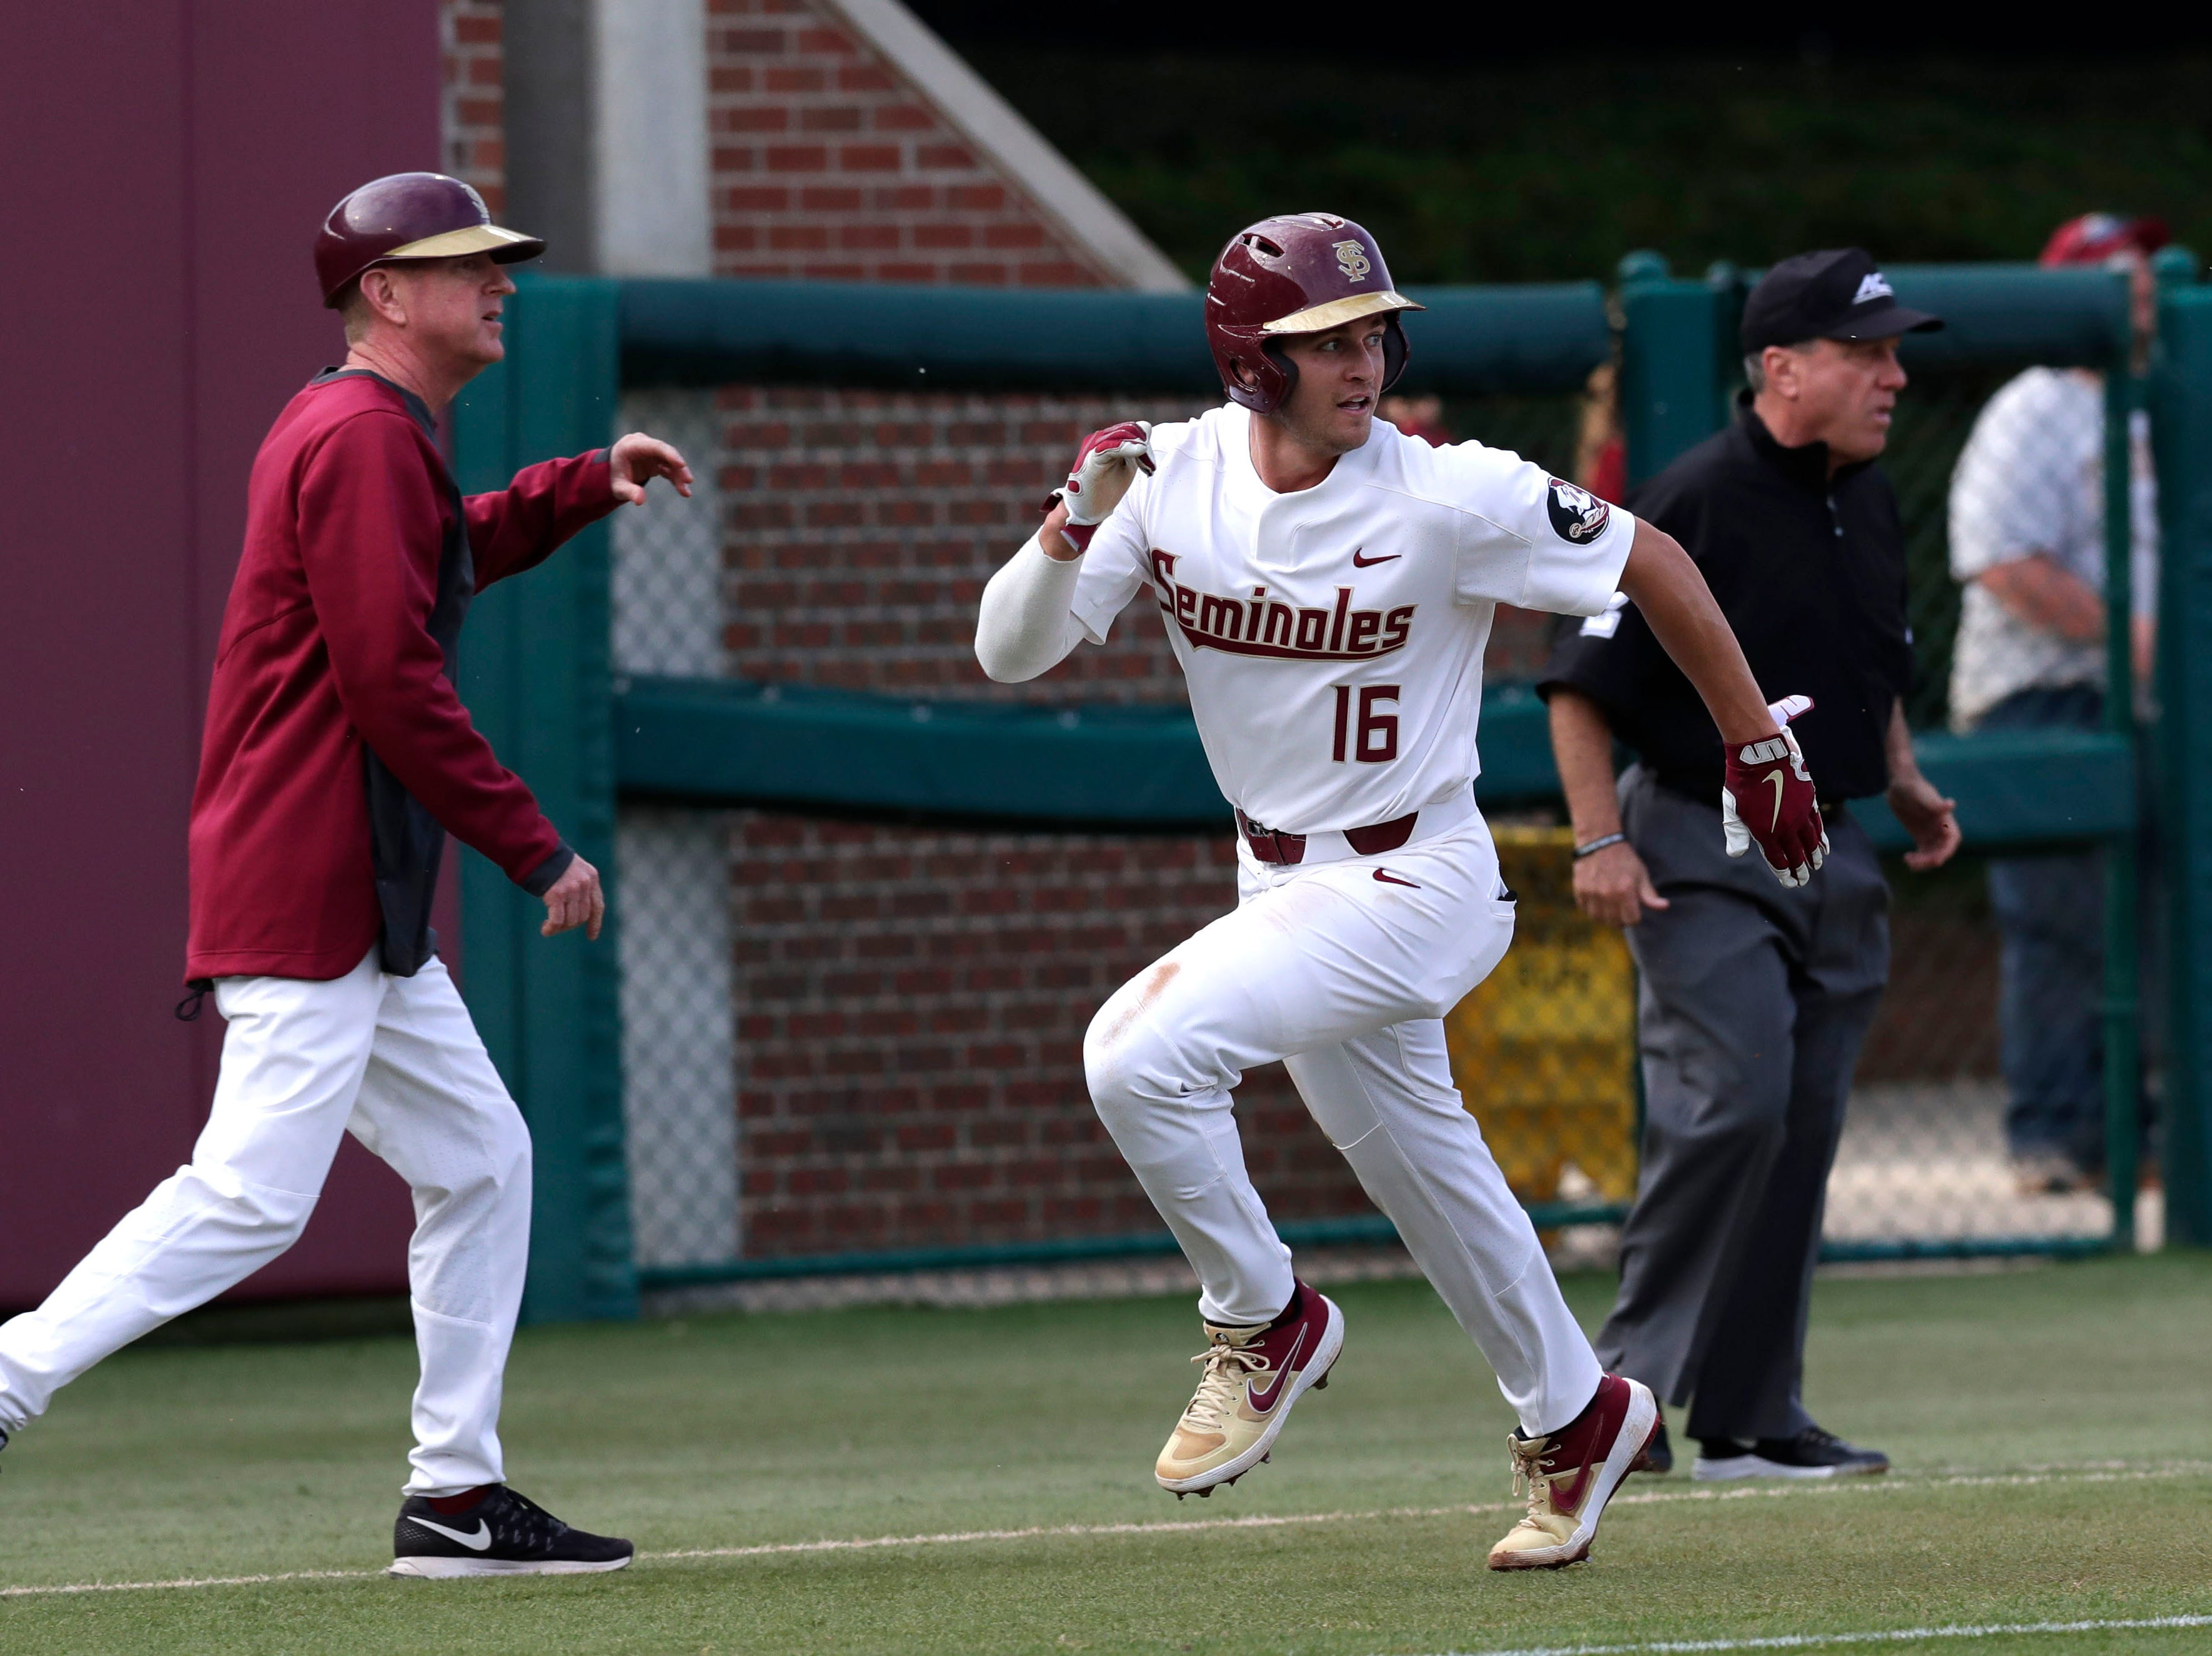 Florida State Seminoles infielder Mike Salvatore (16) runs to home base as the Florida State Seminoles host the Maine Black Bears in the 2019 season opener game, Friday Feb. 15, 2019.